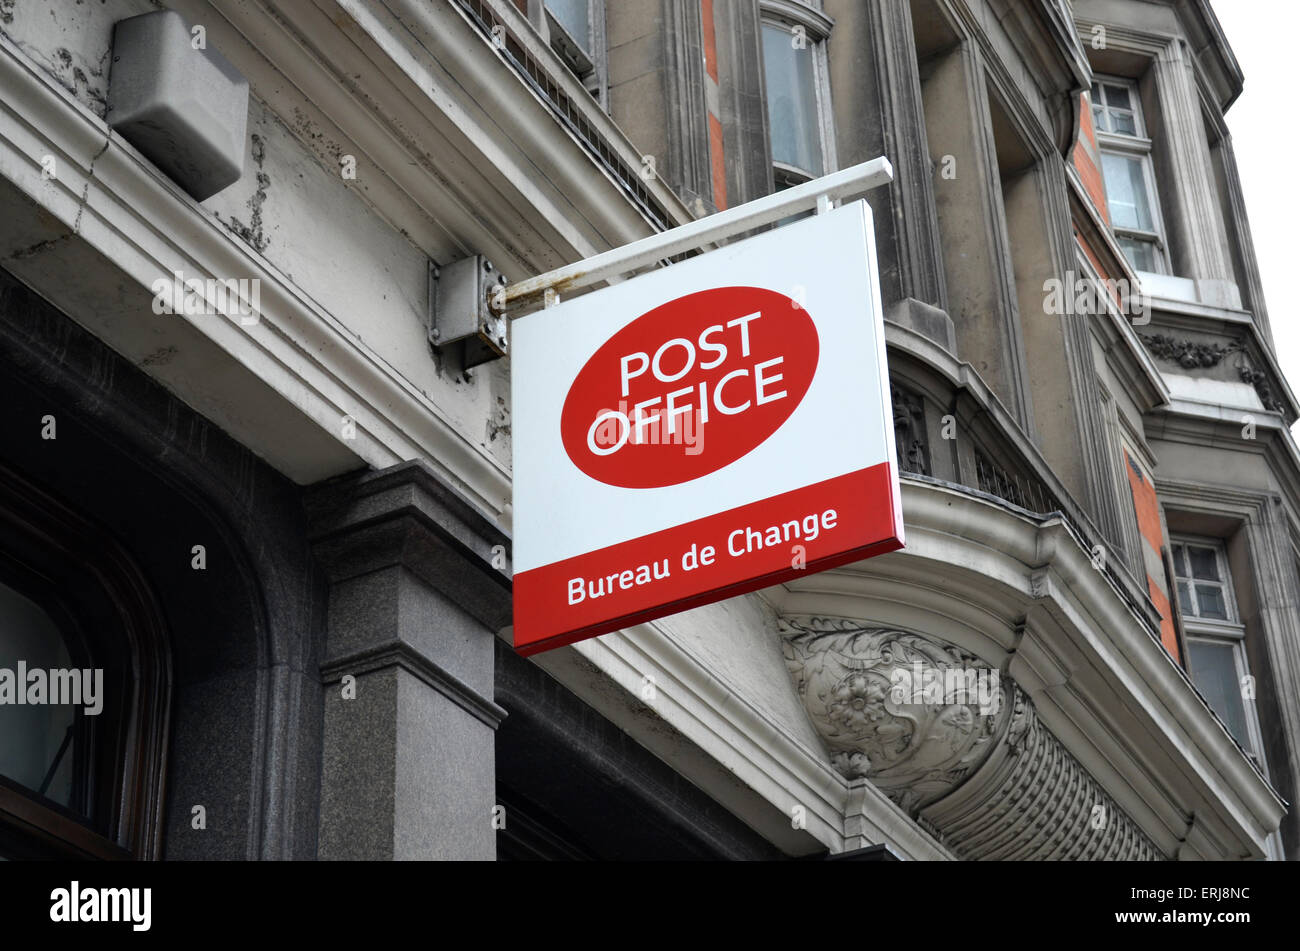 Post Office London sign - Stock Image